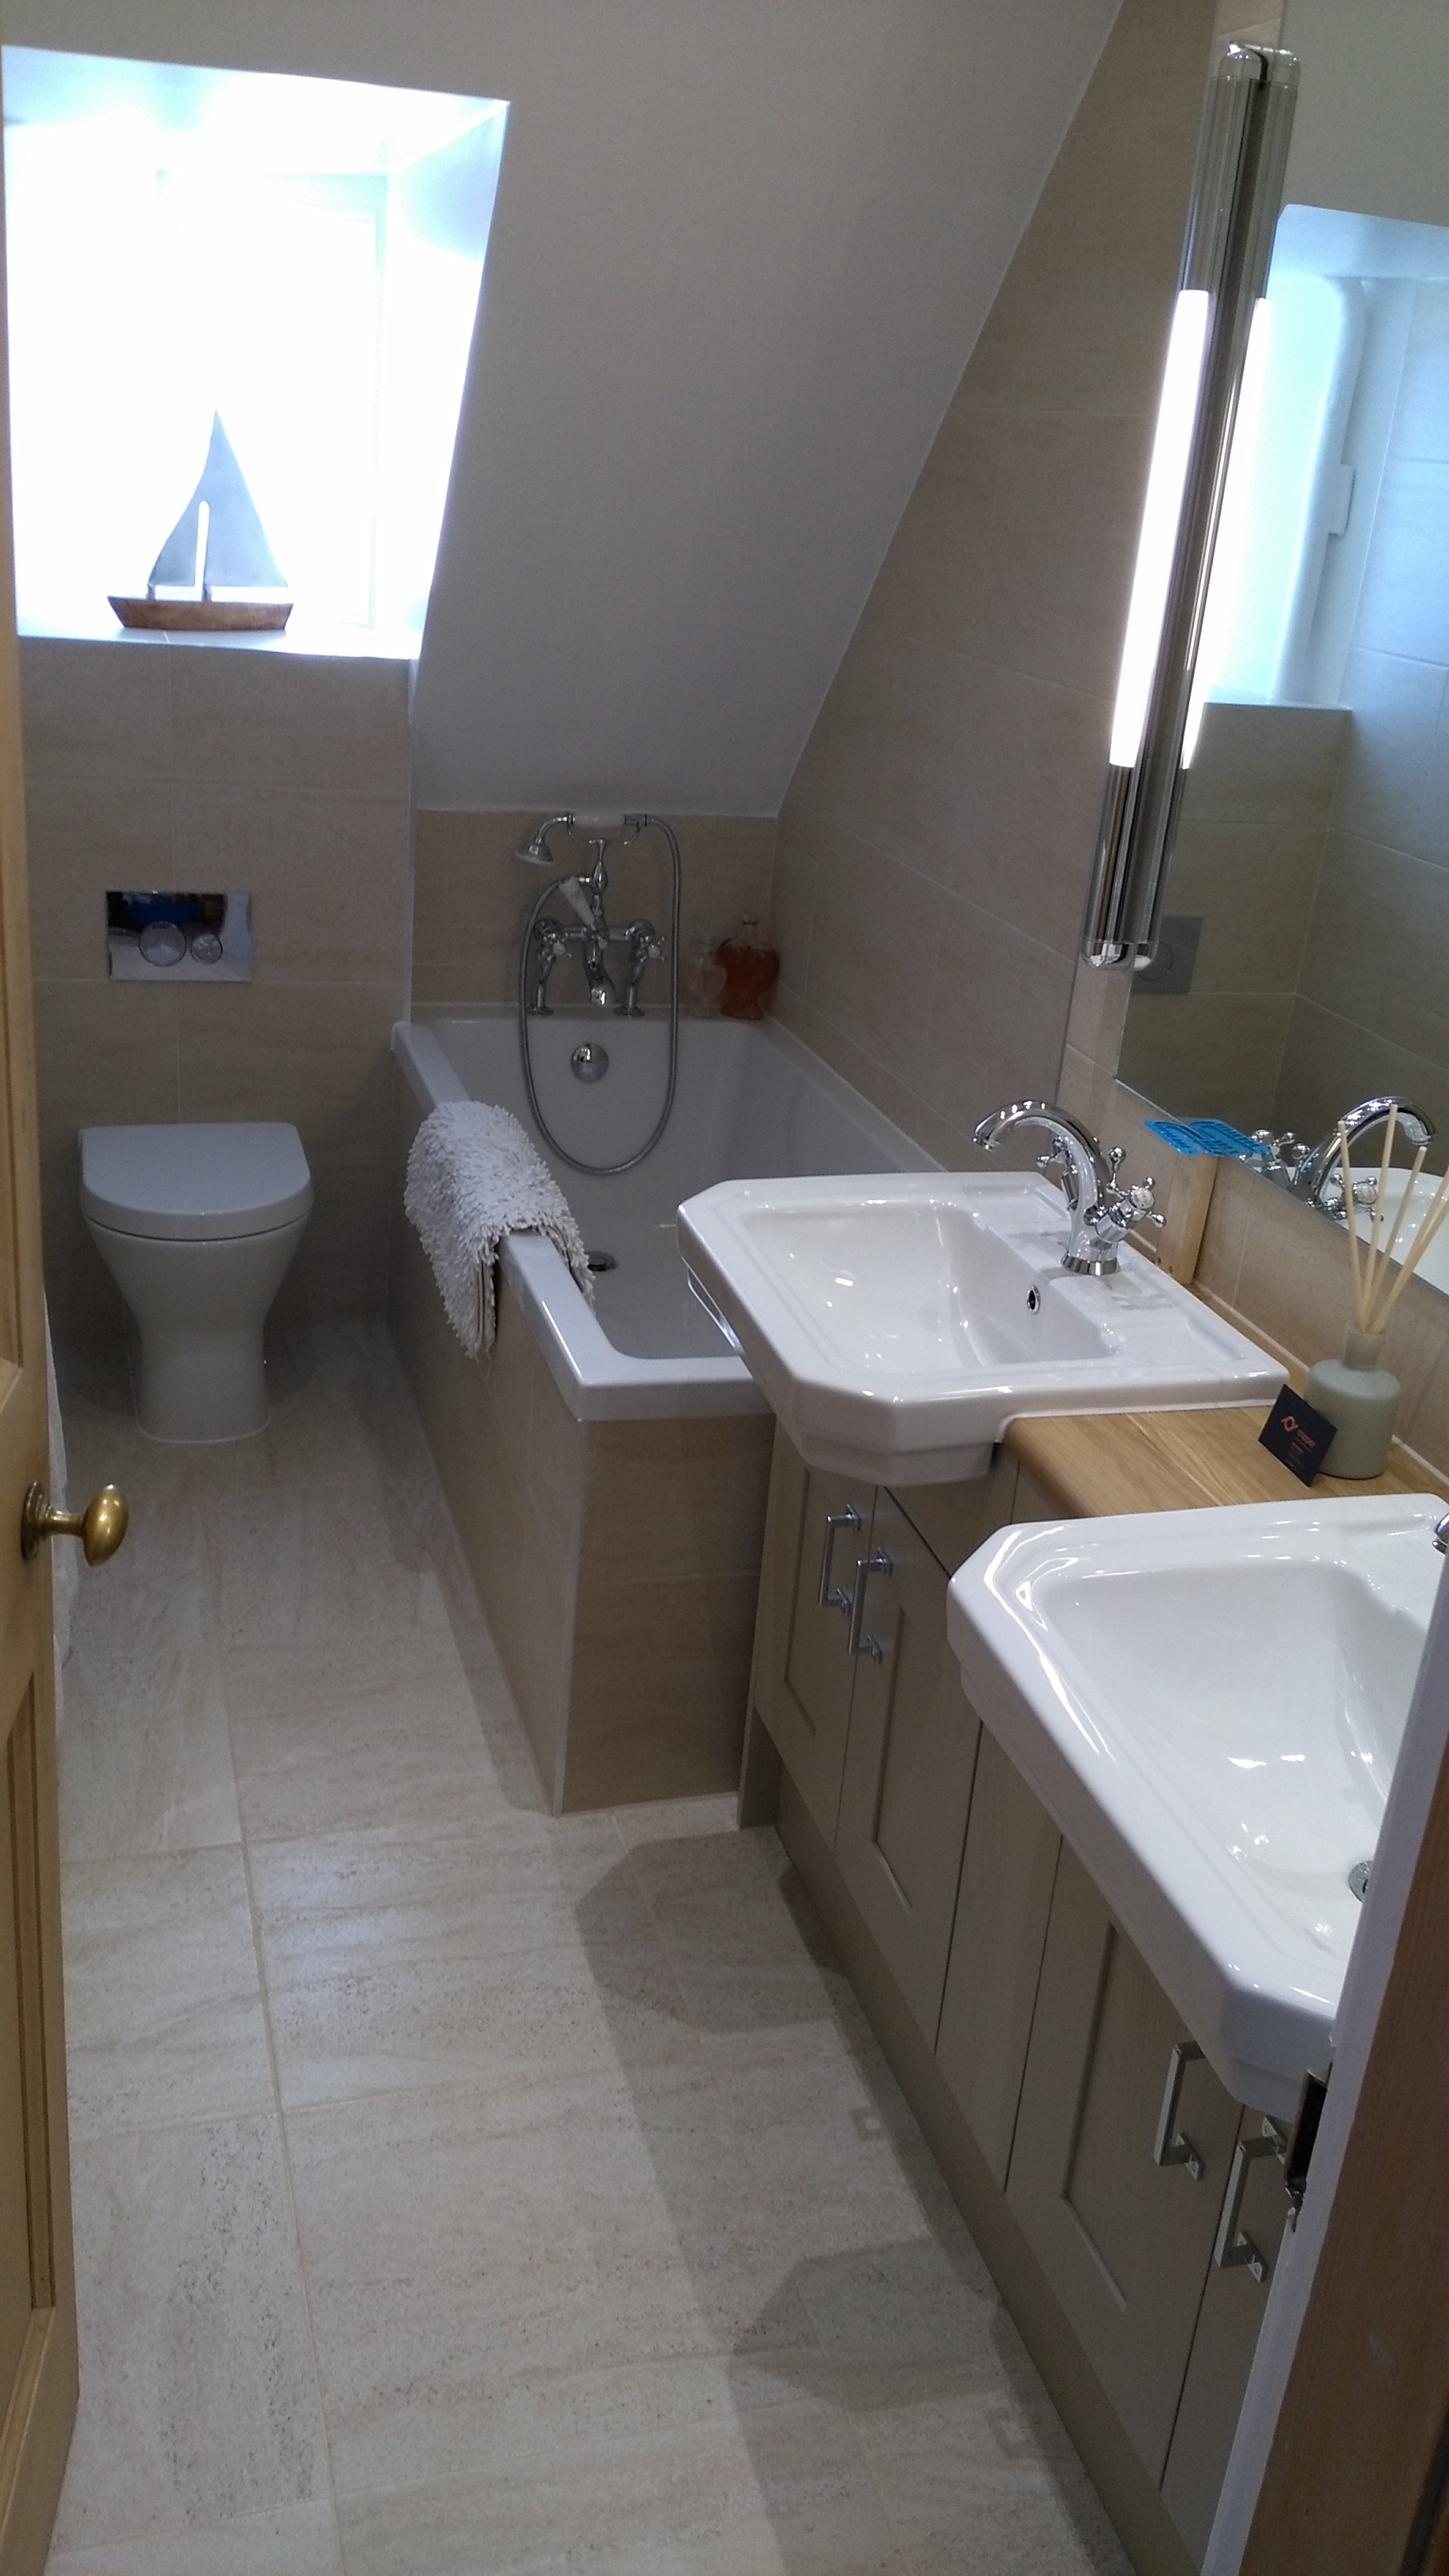 Twin sinks with